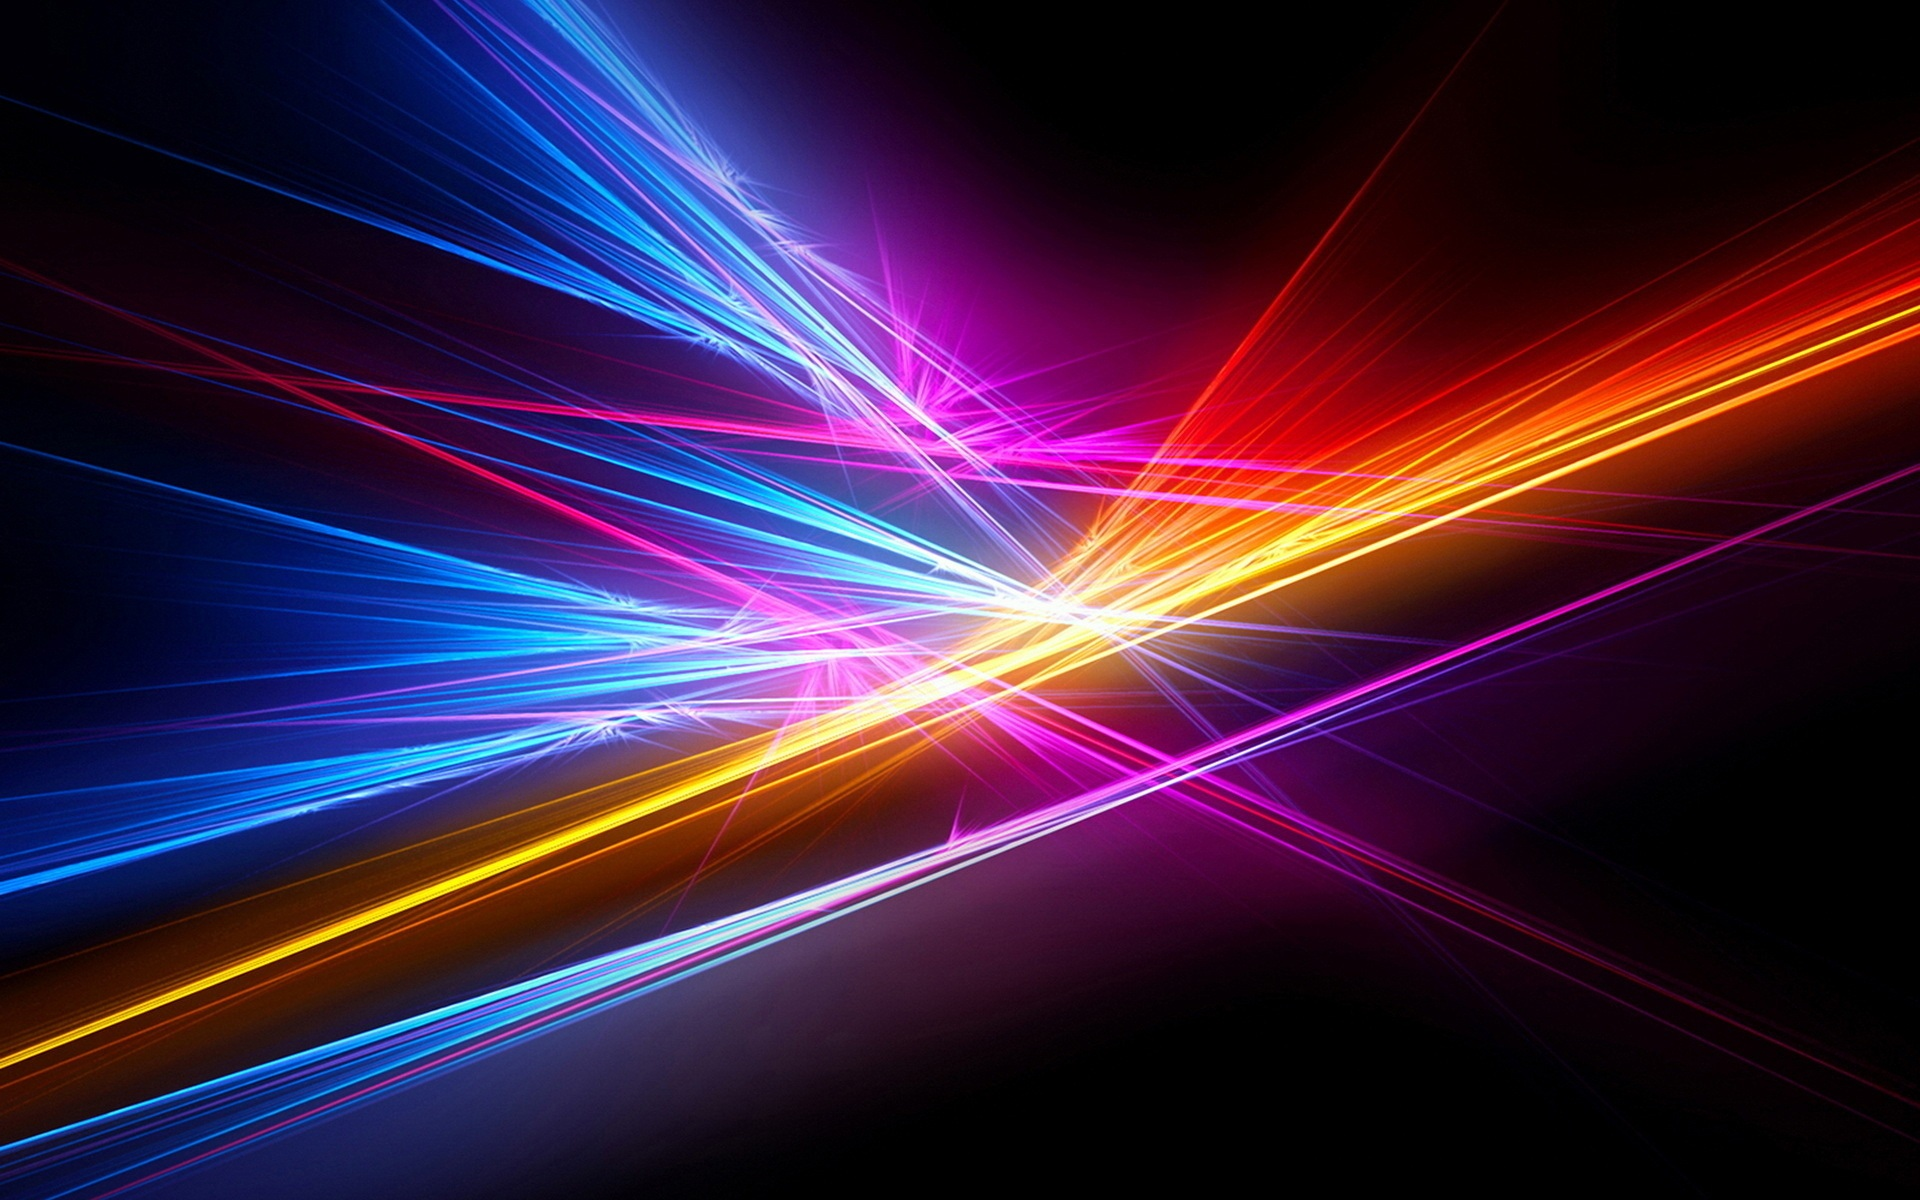 Wallpaper Abstract Light Line 1920x1200 Hd Picture Image